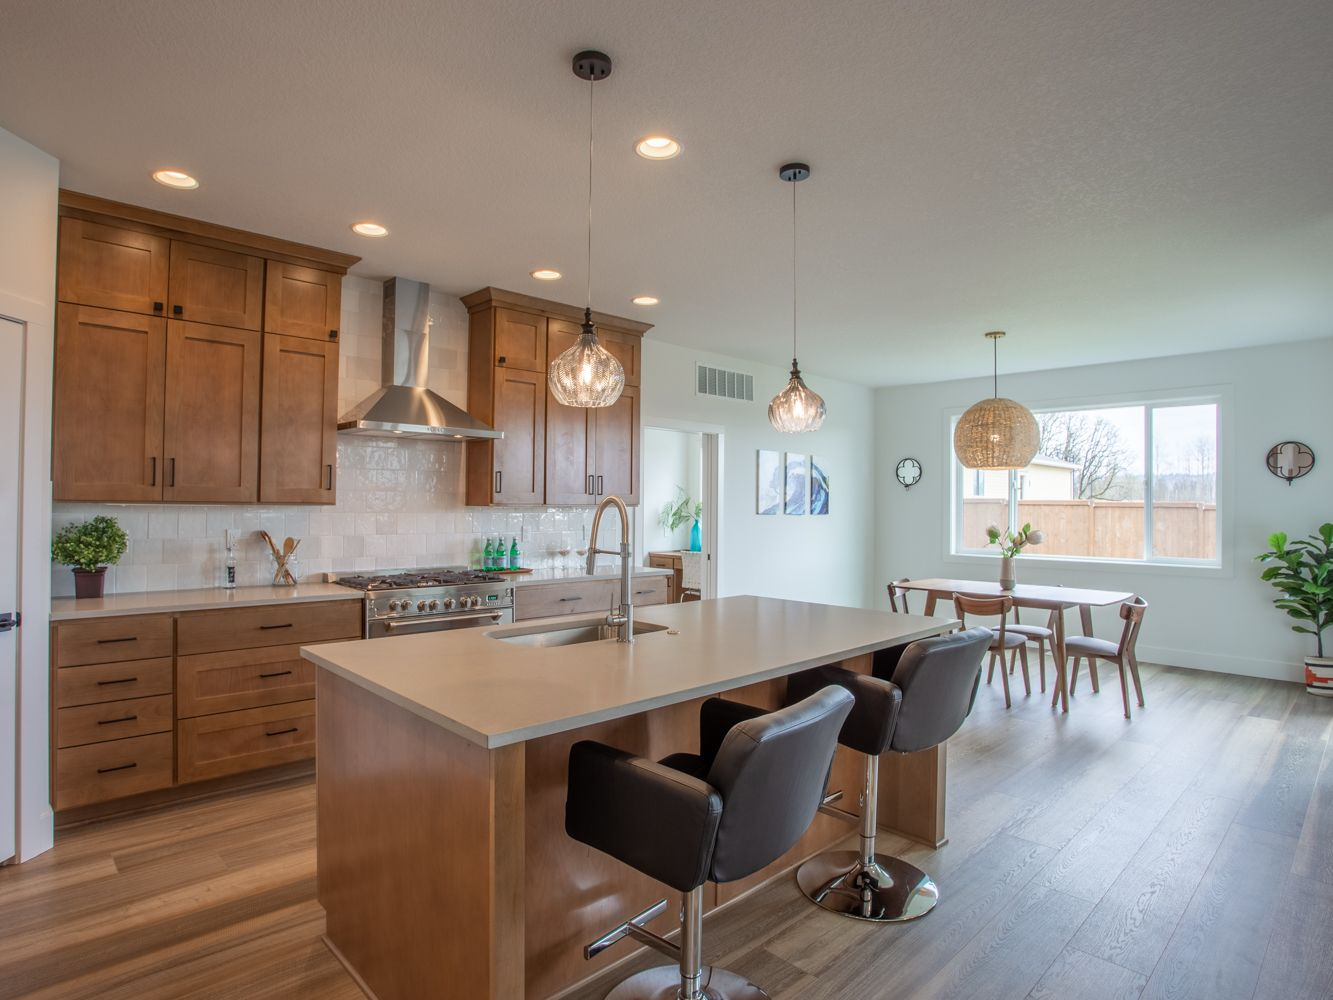 Kitchen featured in the FP60 By Stone Bridge Homes NW in Portland-Vancouver, OR